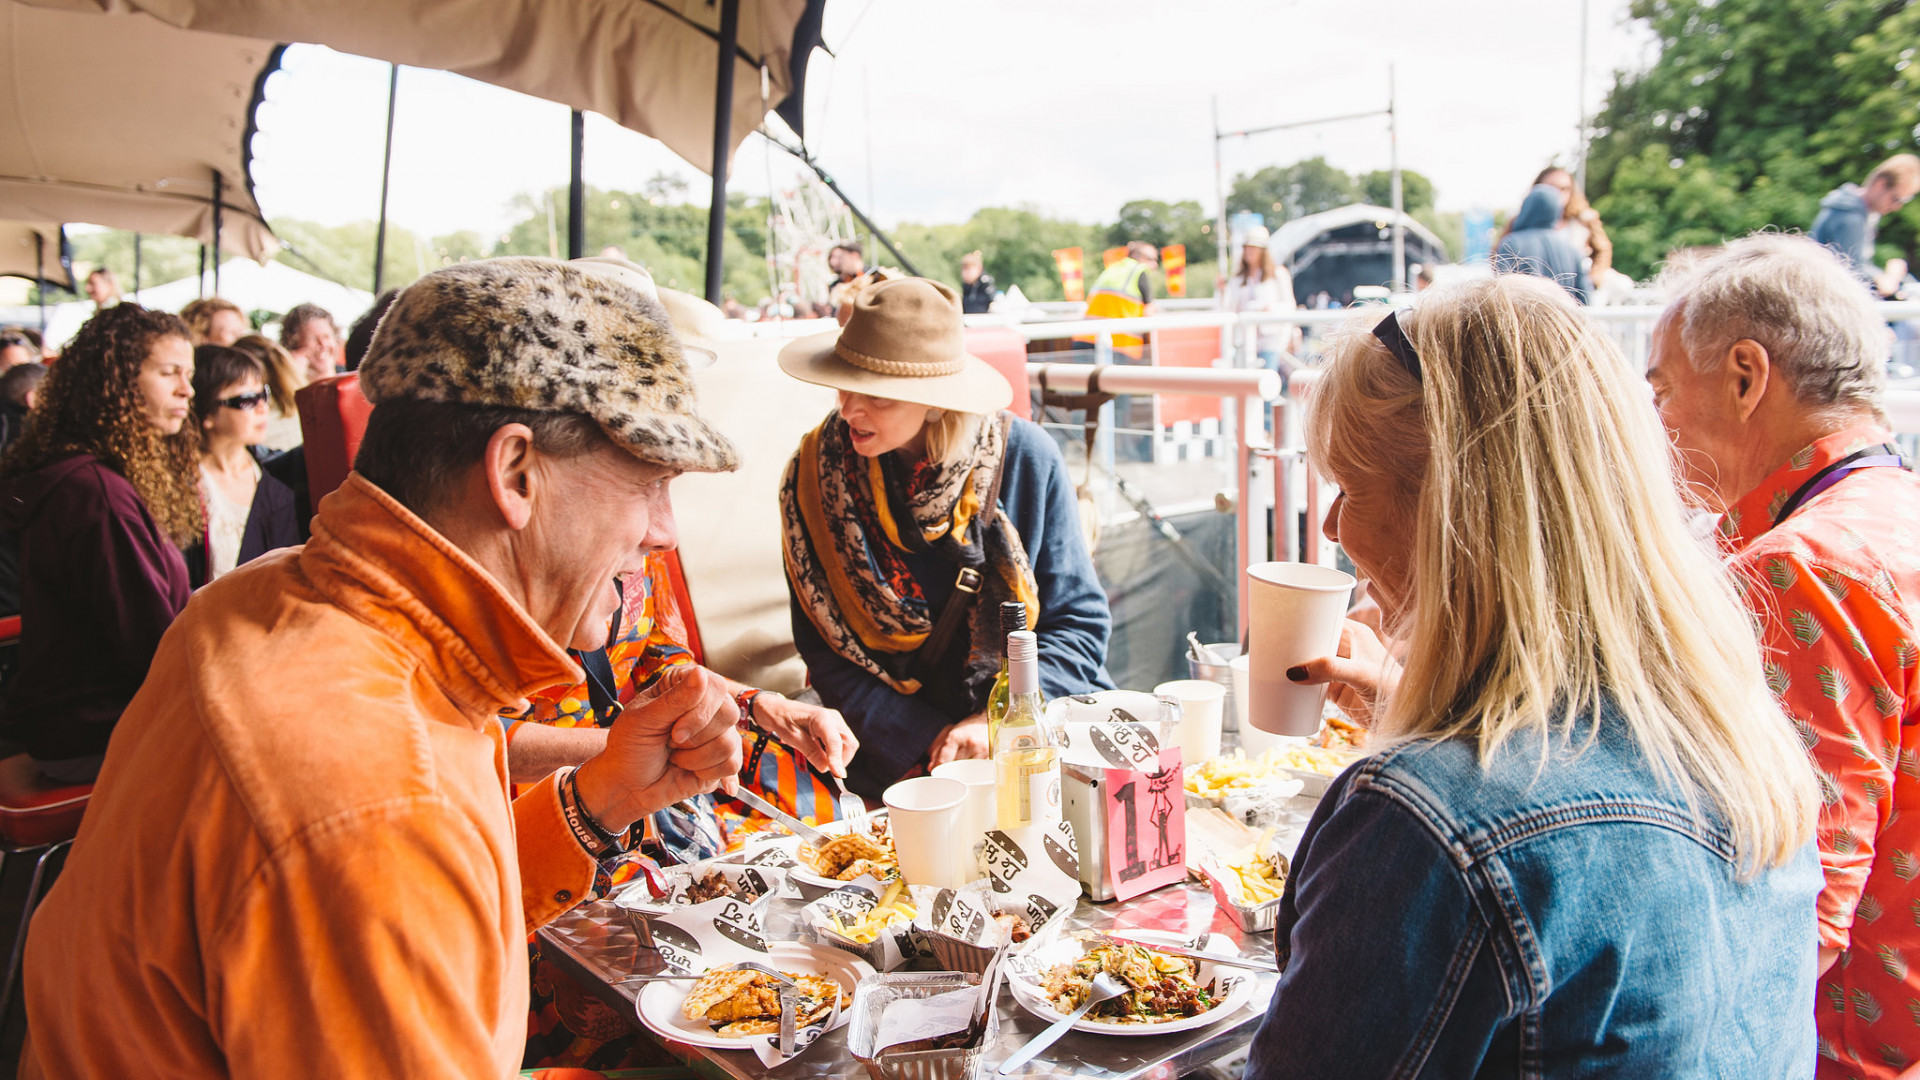 The Le Bun diner at Standon Calling 2017